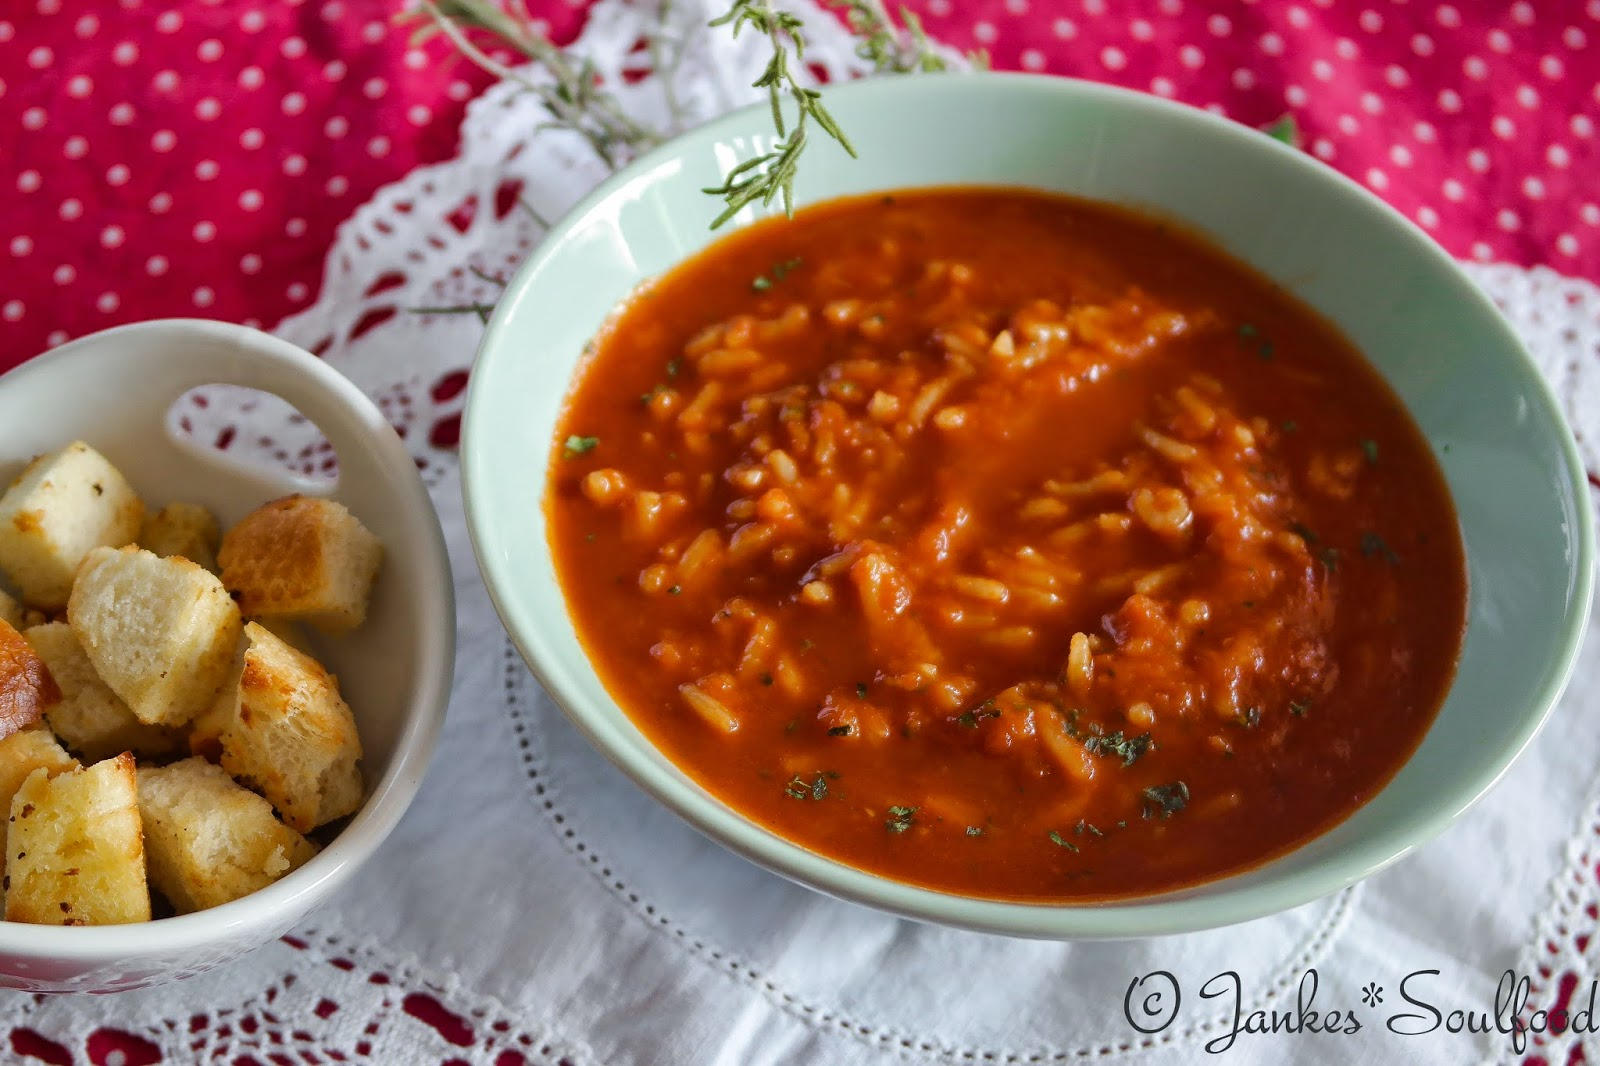 jankes soulfood ratzfatz vegane tomatensuppe. Black Bedroom Furniture Sets. Home Design Ideas